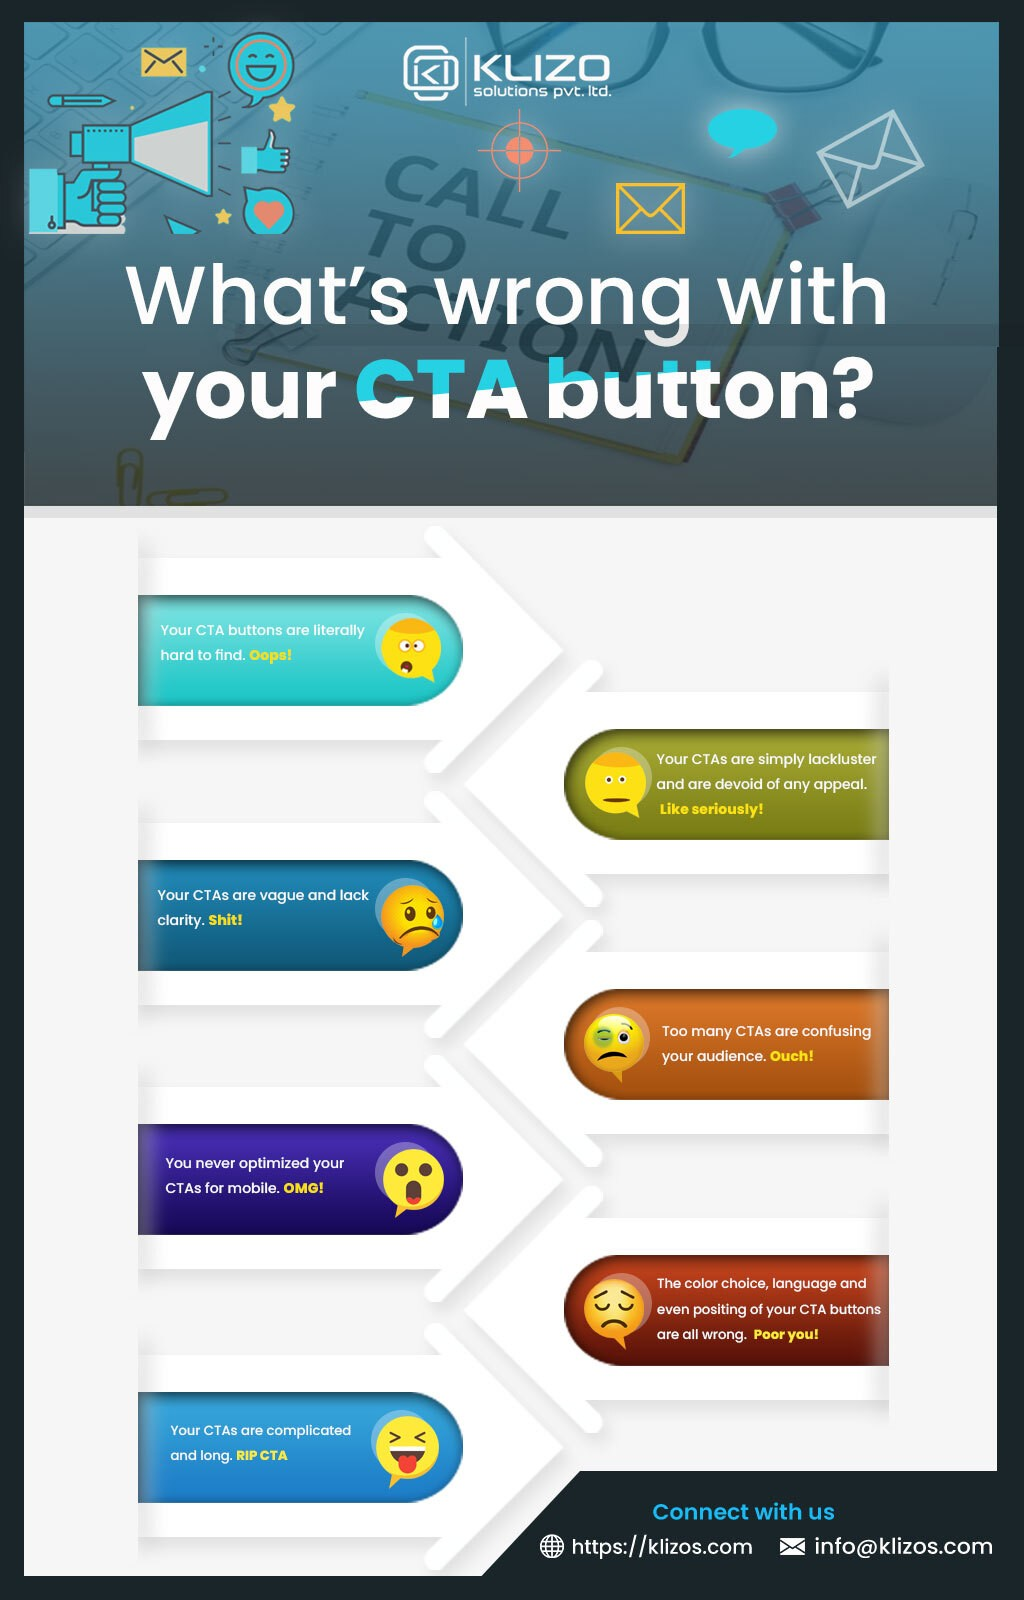 What is wrong with your CTA button